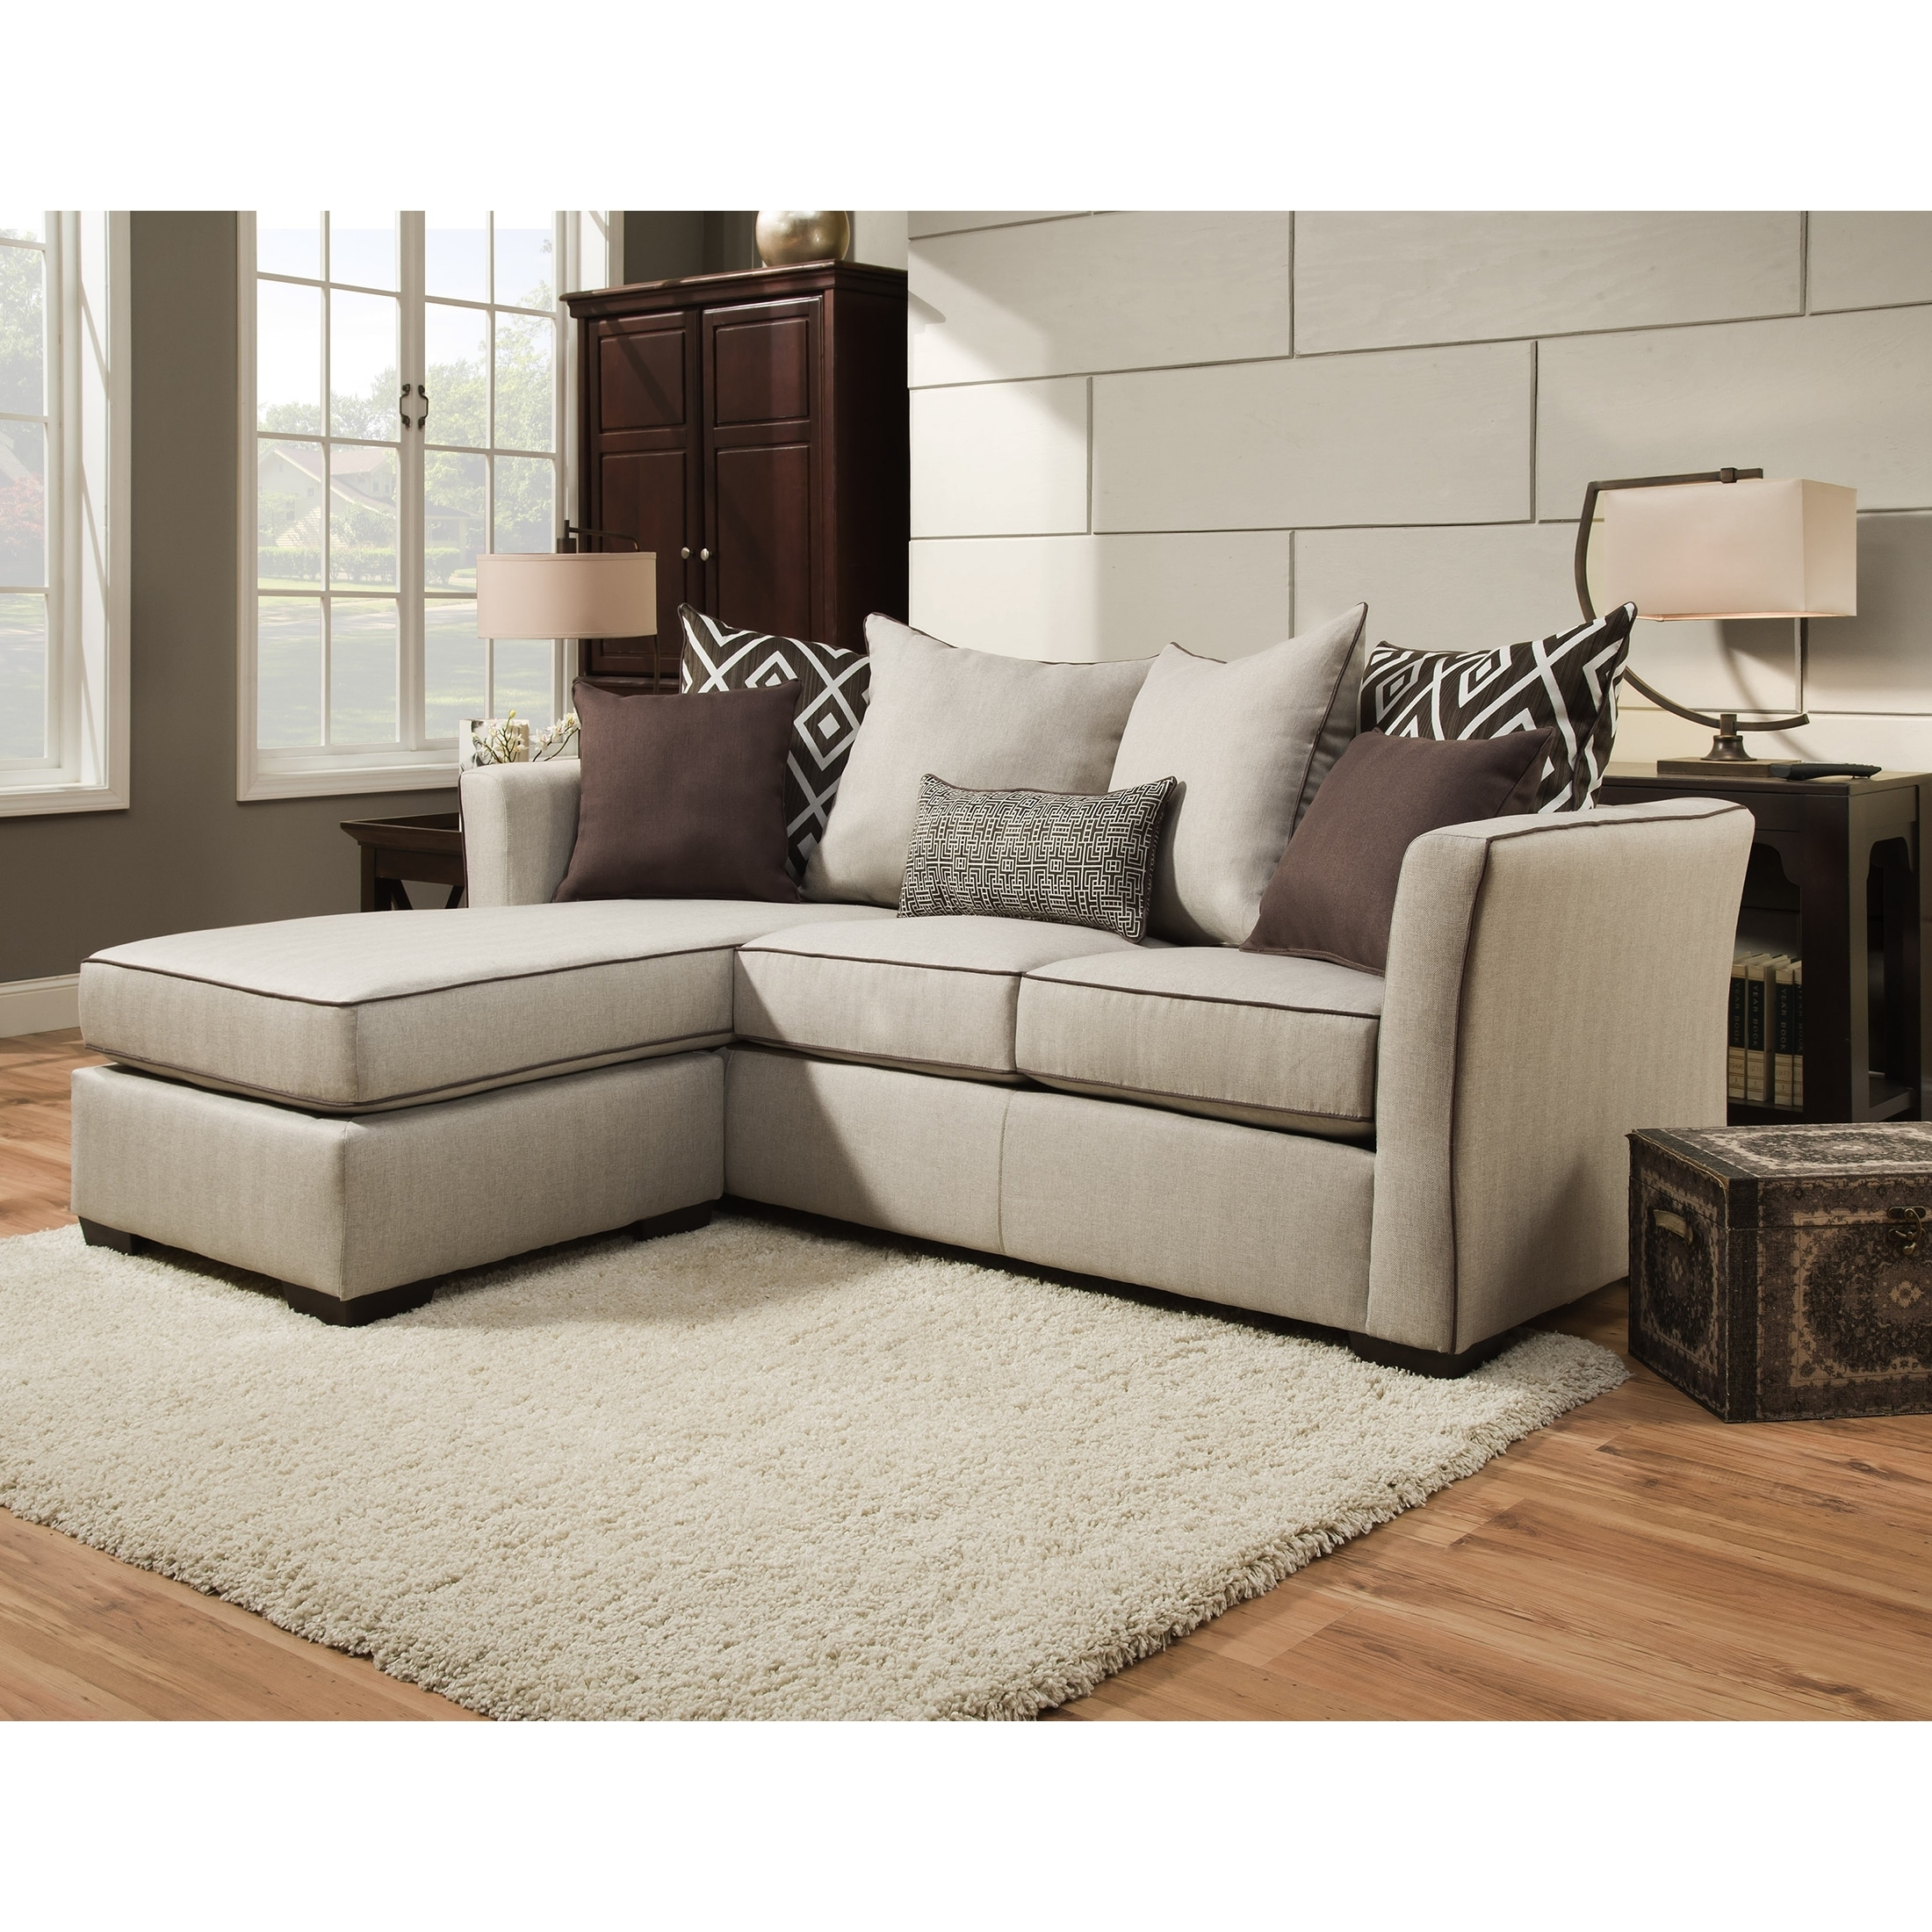 Simmons Upholstery Stewart Sofa Chaise – Free Shipping Today Regarding Simmons Chaise Sofas (View 9 of 10)